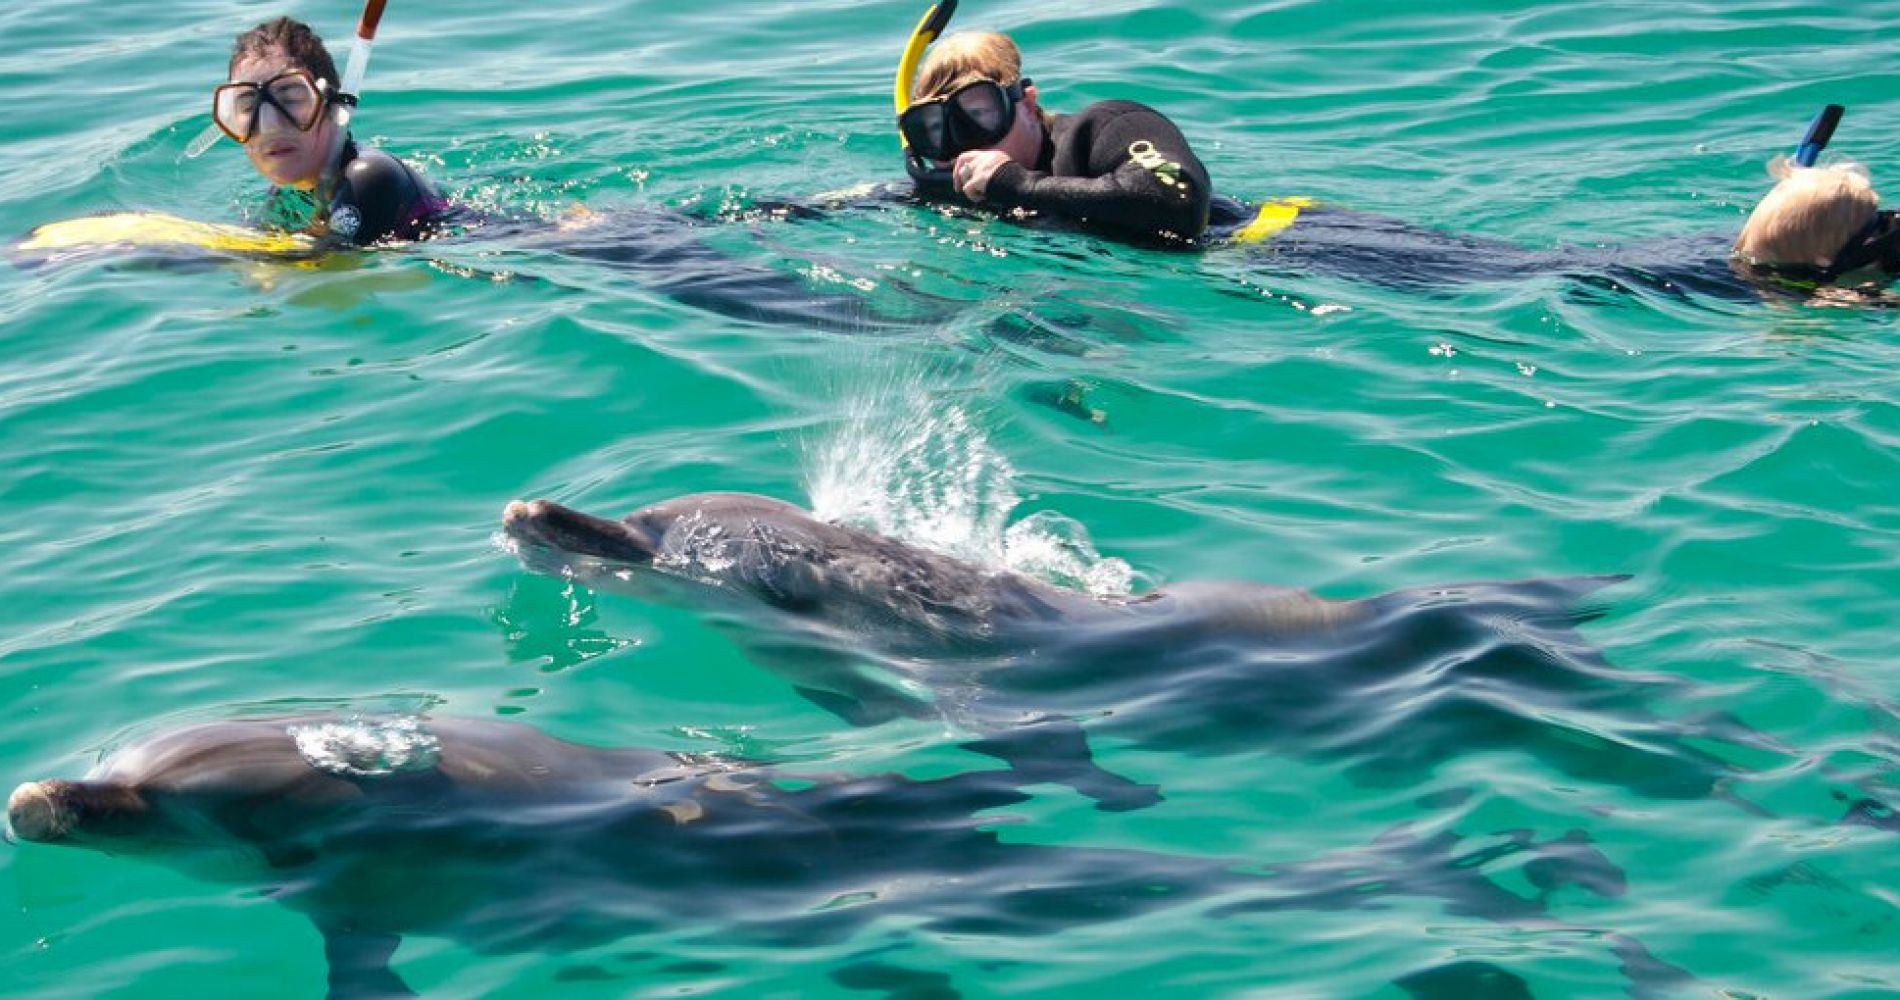 Swim with dolphins experience gifts